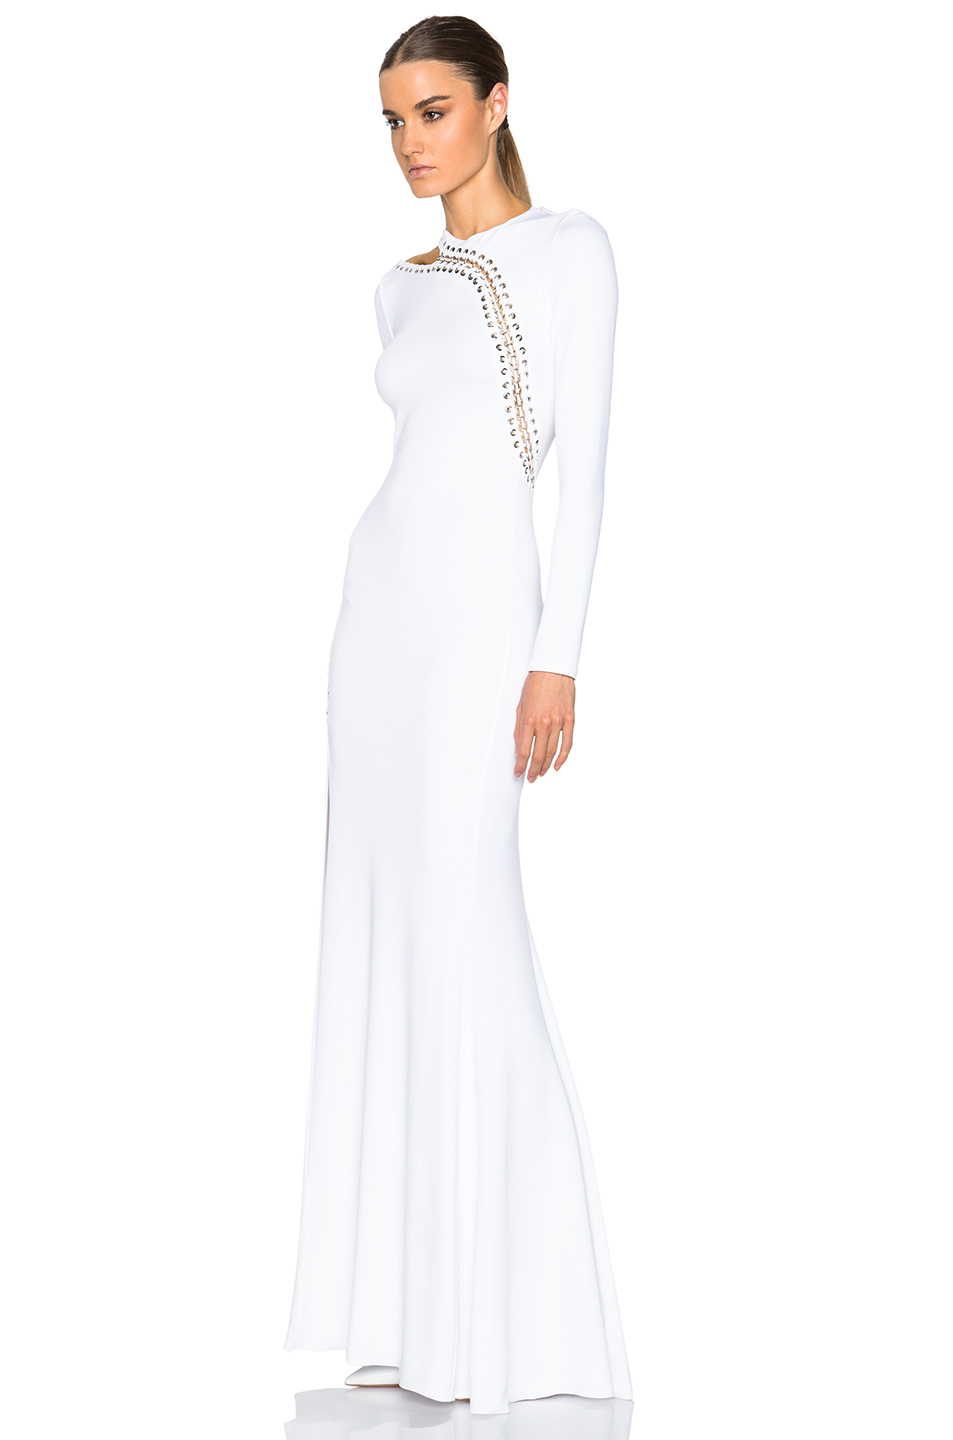 Emilio pucci Long Sleeve Gown With Slit in White | Lyst